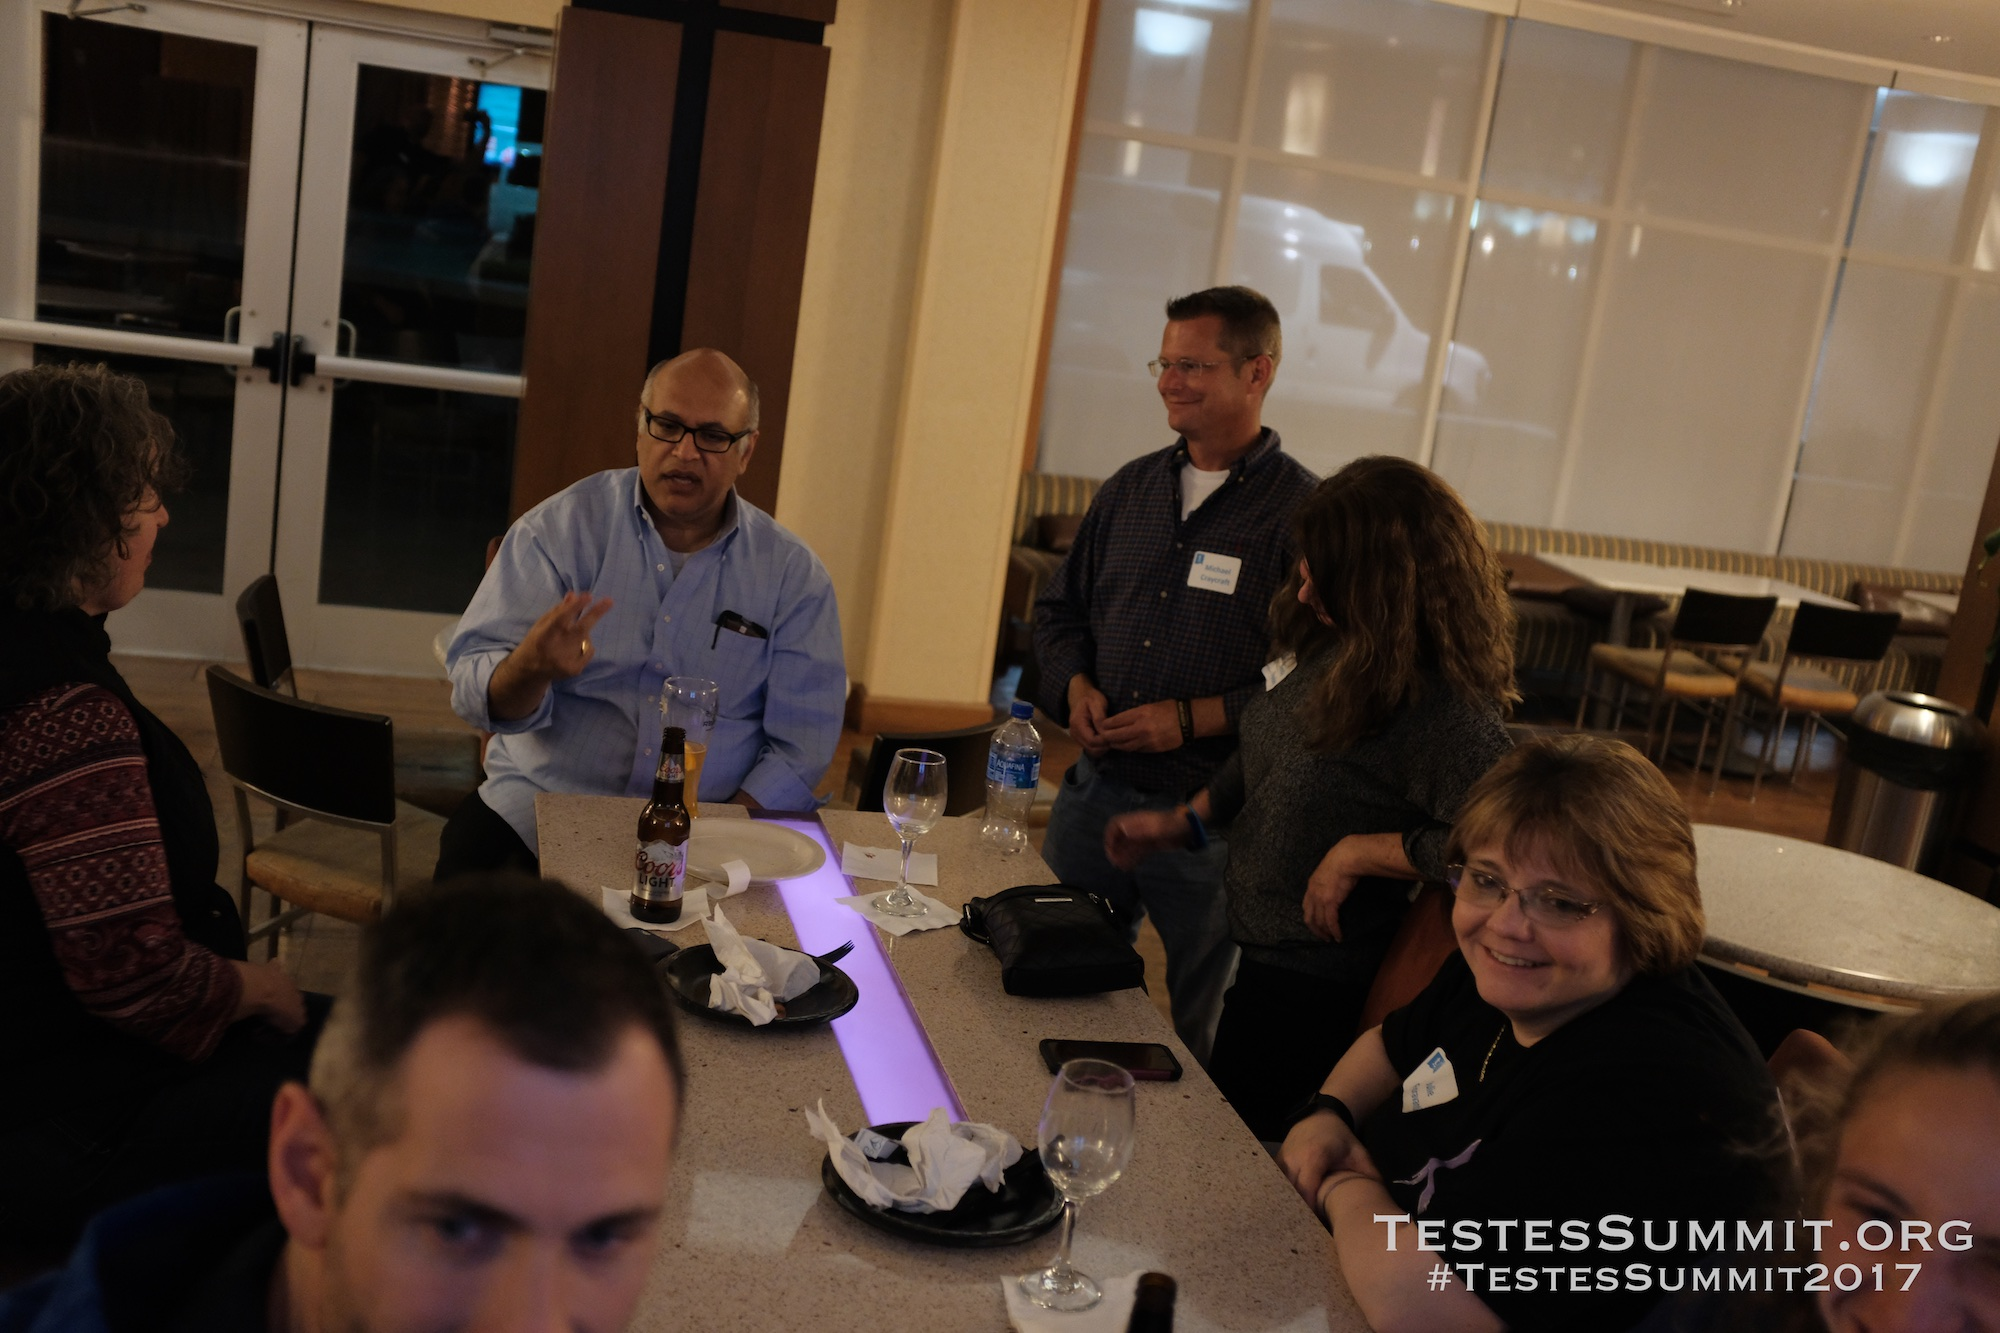 TestesSummit2017-118_DSCF5529-HD-WM.jpg